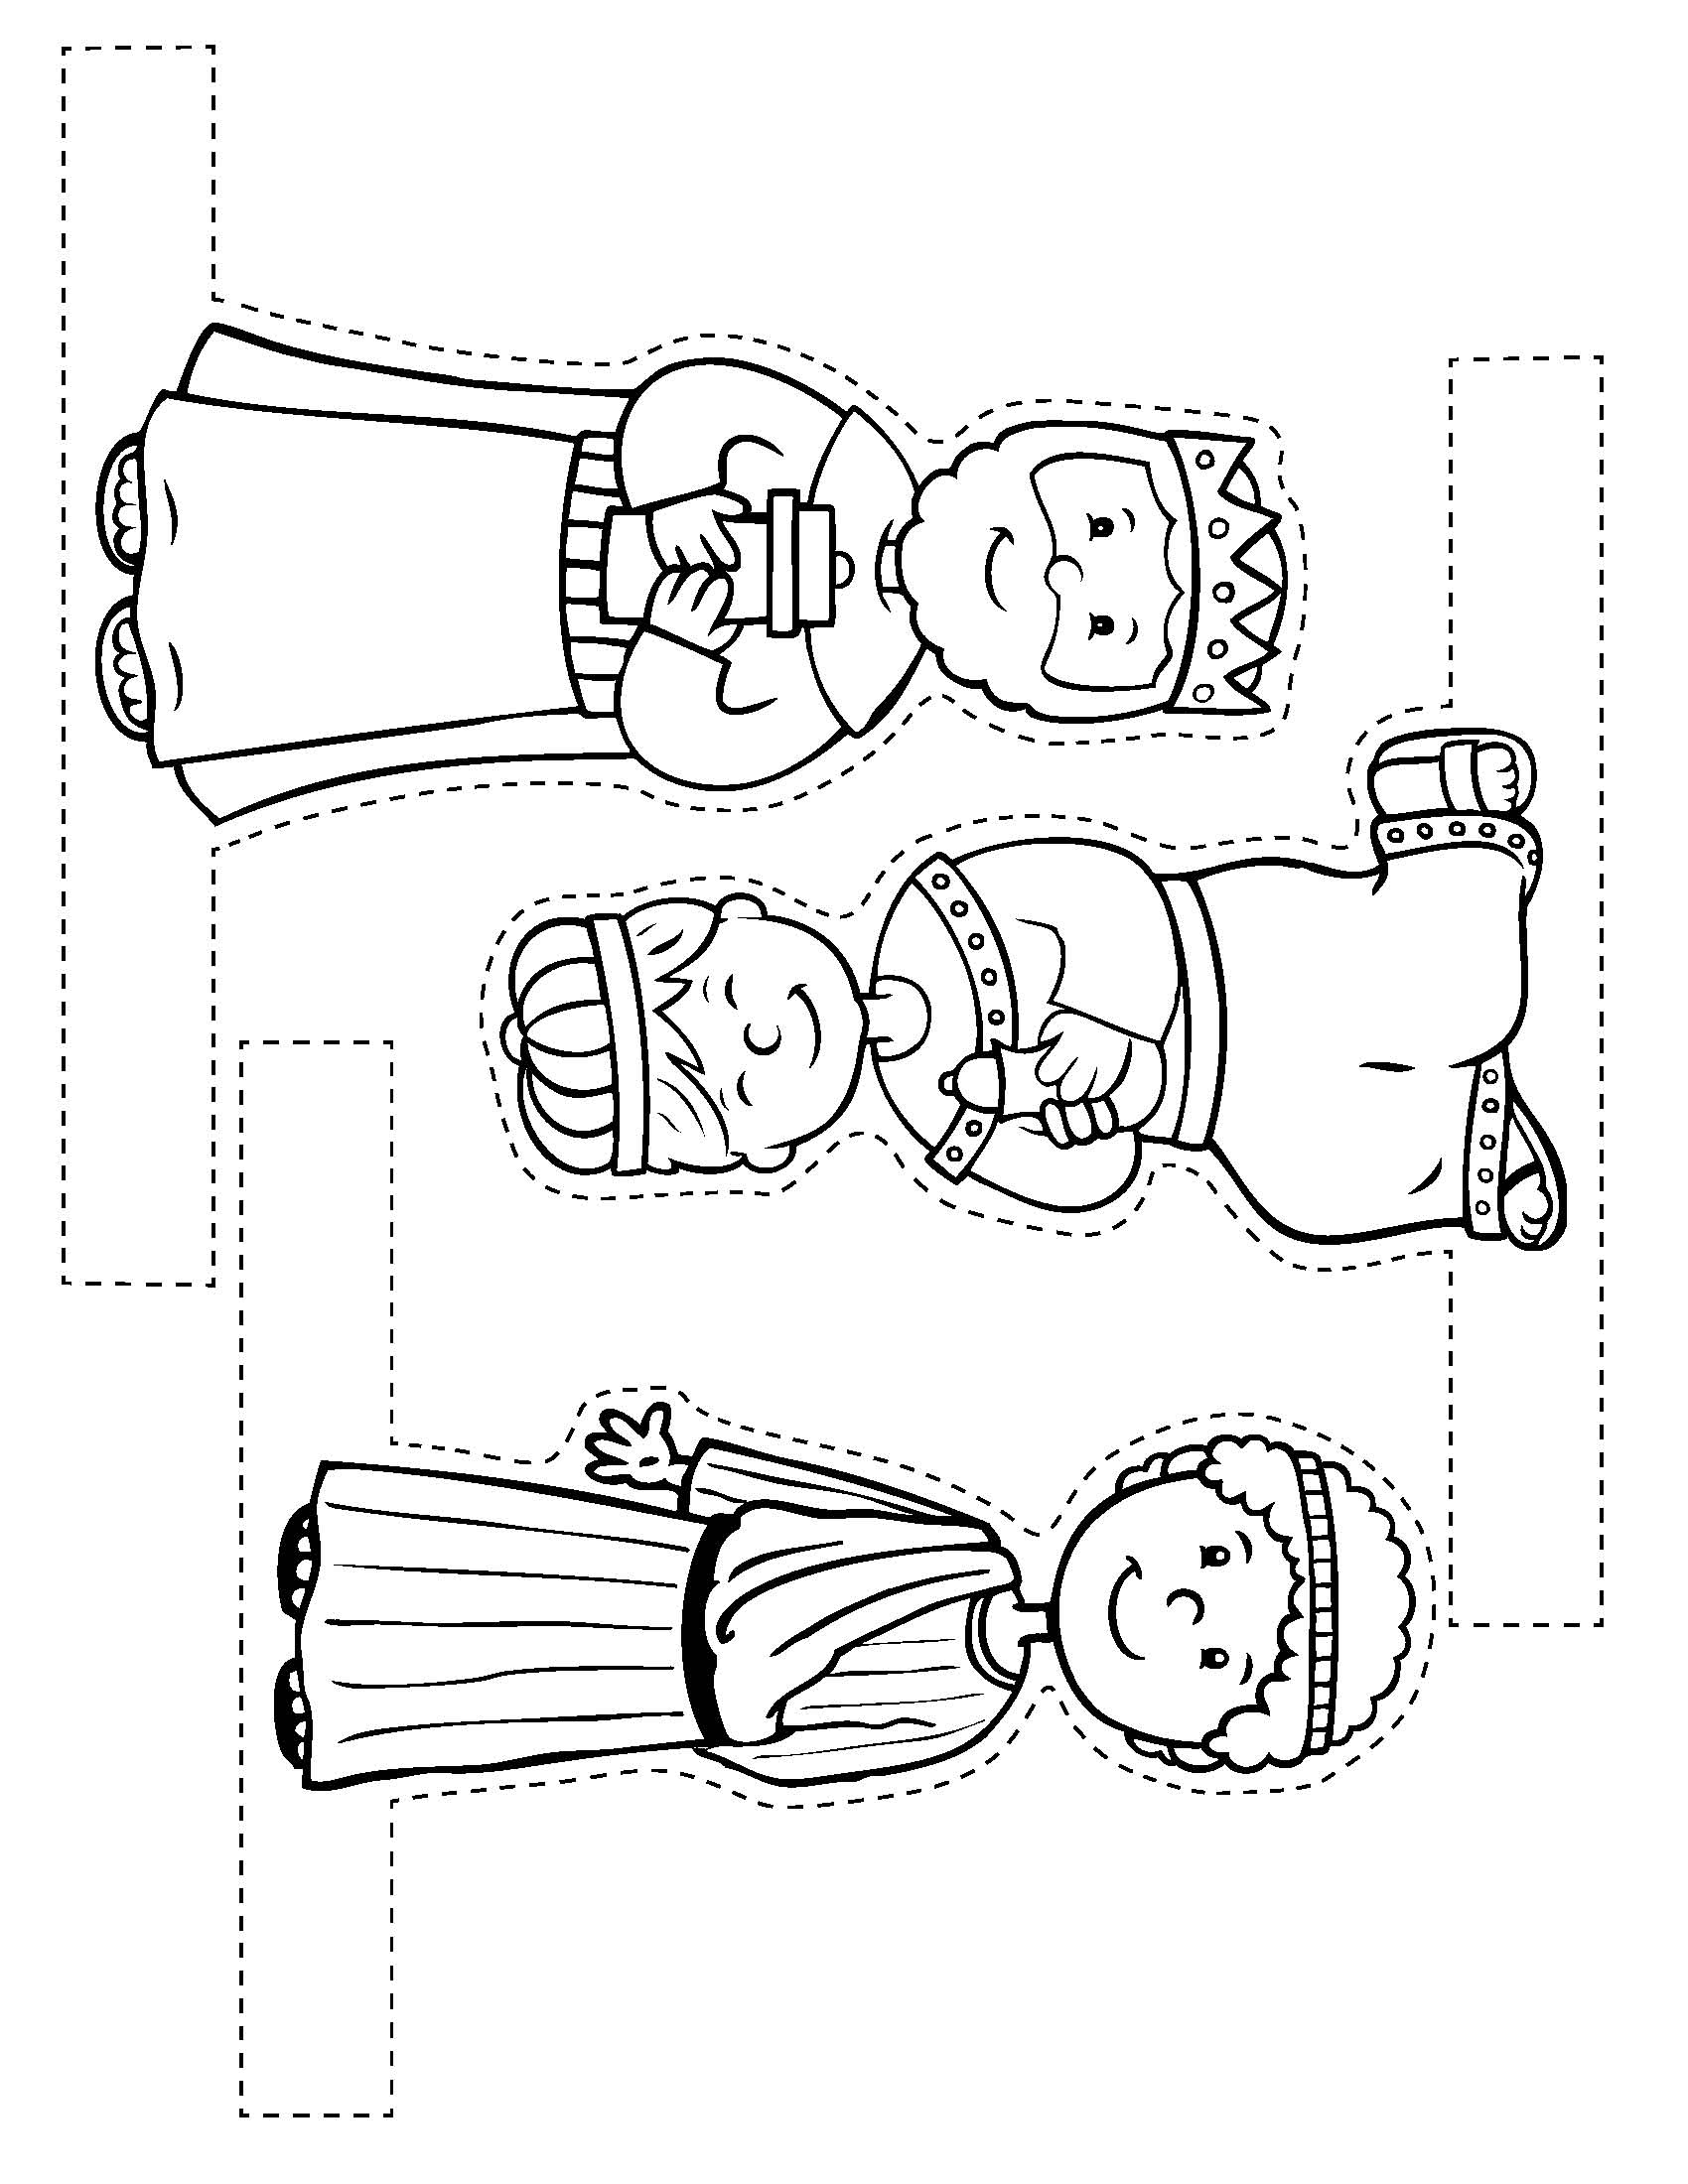 paper nativity scene cut out manualidades biblicas on pinterest bible crafts sunday scene nativity cut paper out